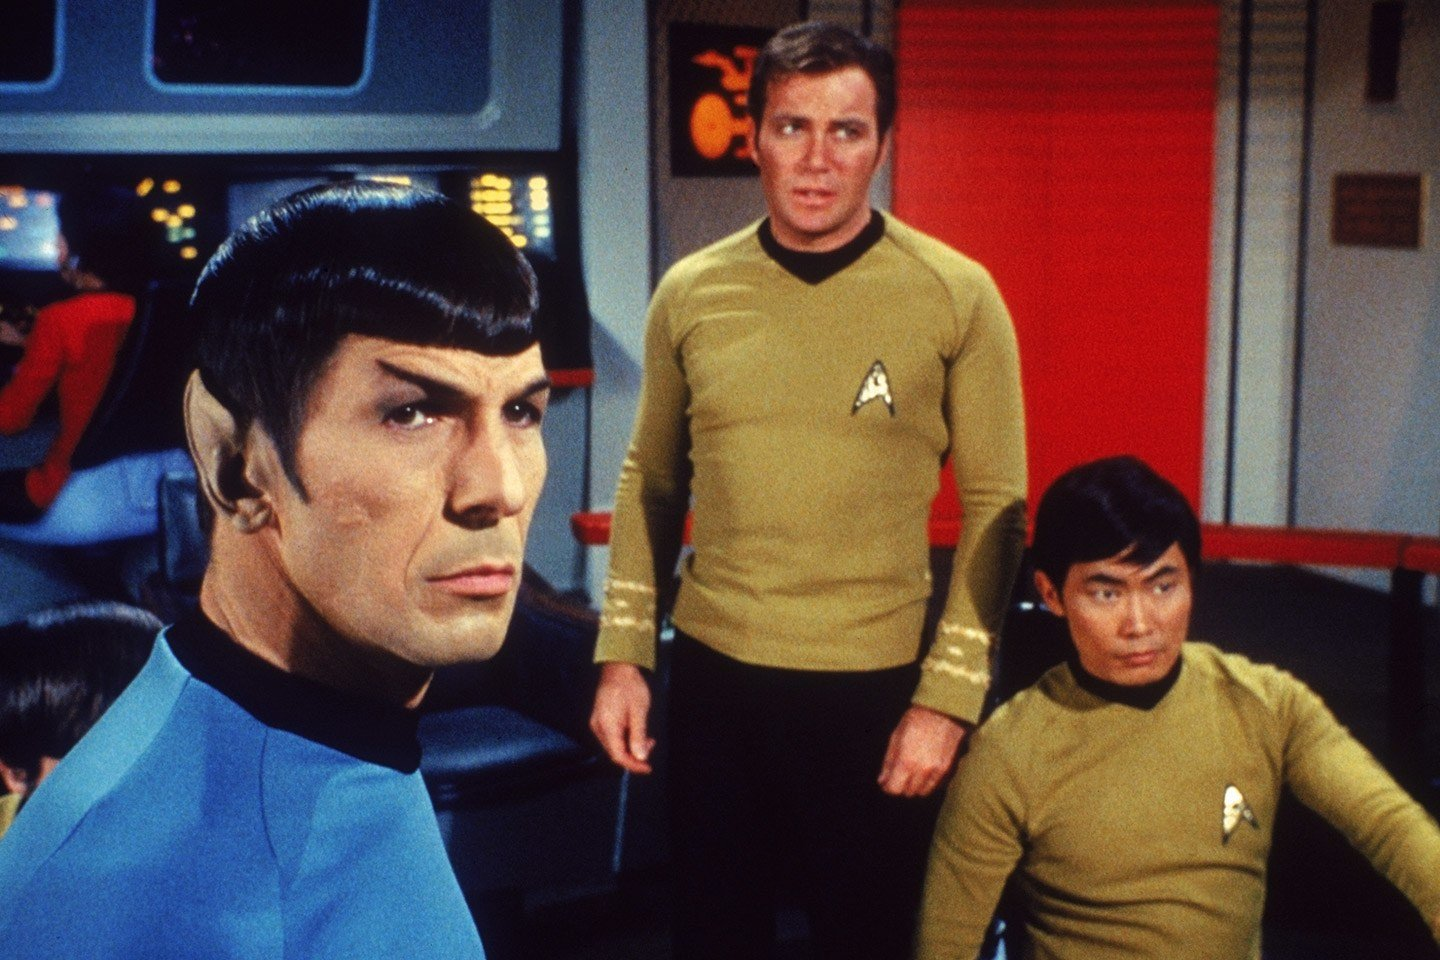 Paramount announces that two new Star Trek films are in the works screenshot